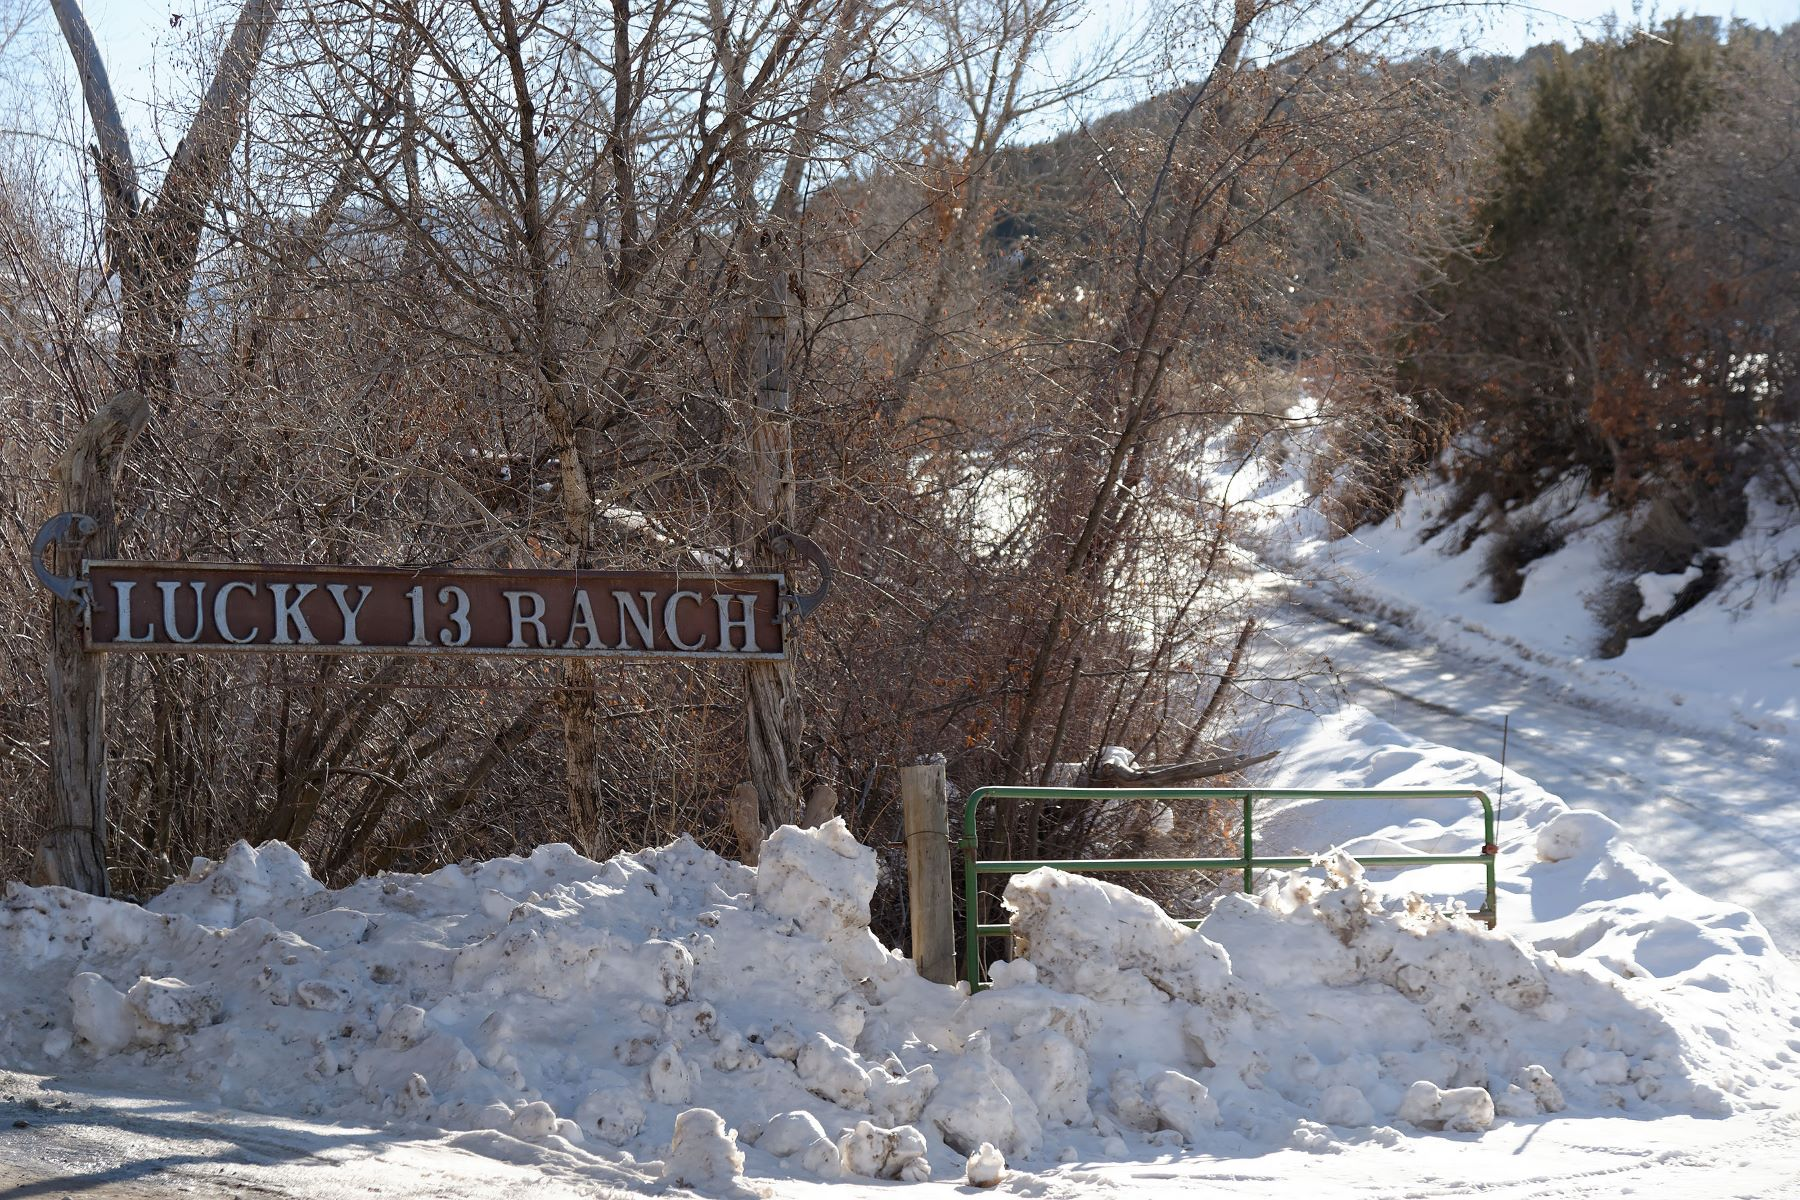 Single Family Homes for Active at Lucky Ranch 13 Lot A TBD County Road 317 Lot A Rifle, Colorado 81650 United States